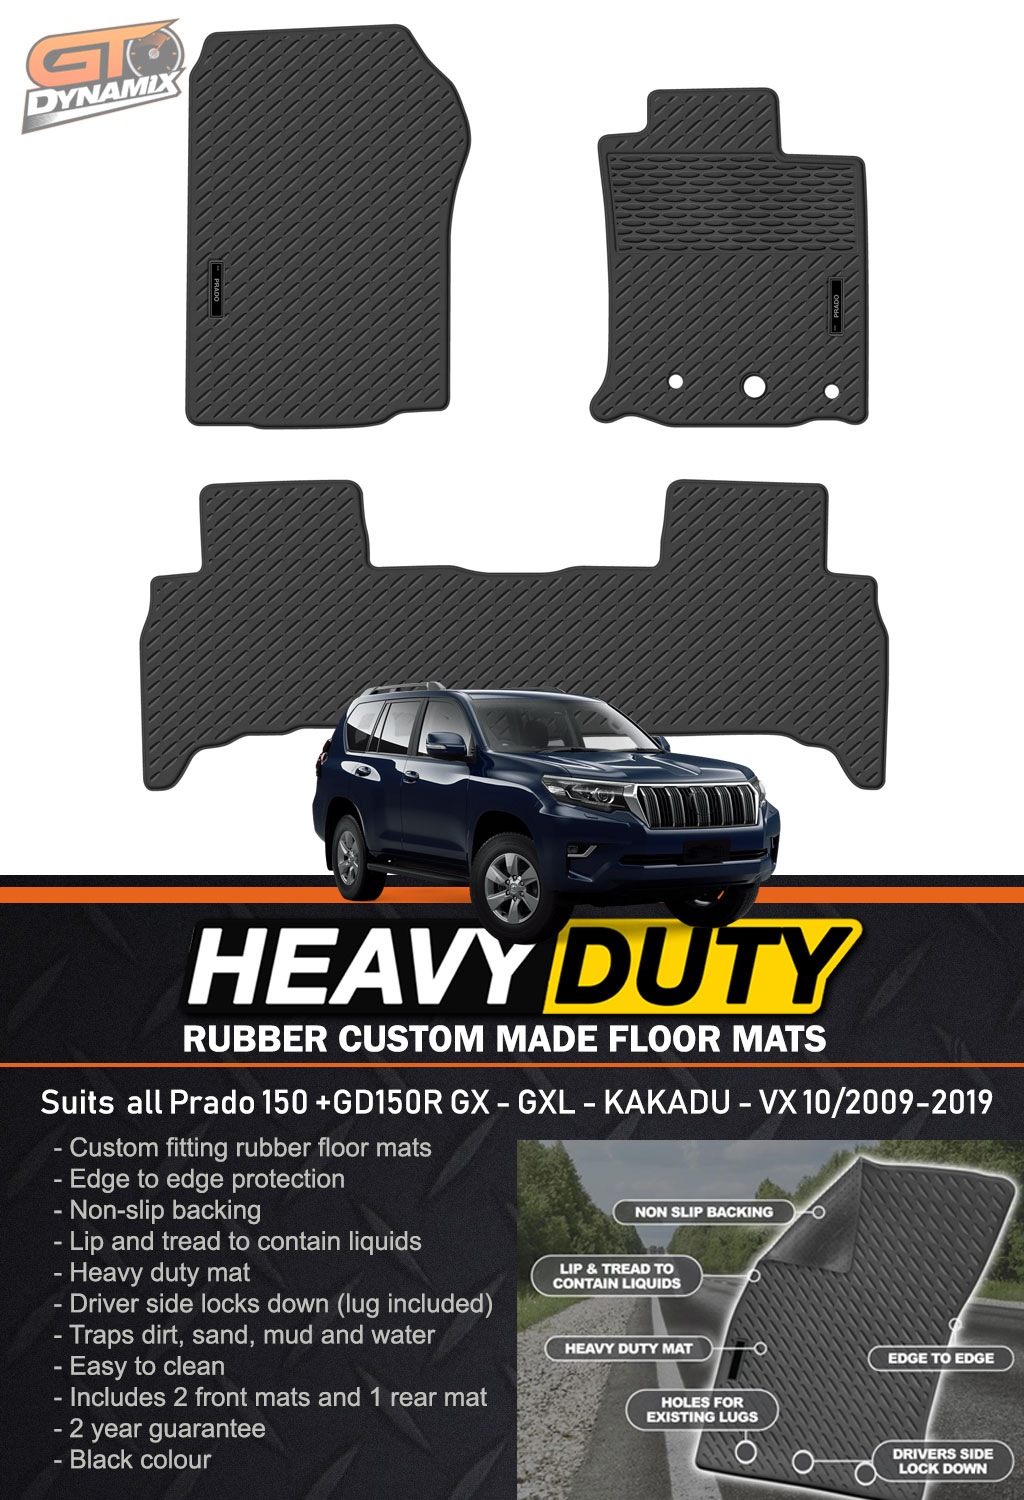 Custom Hd Rubber Floor Mats For Toyota Prado 150 Gx Gxl Vx